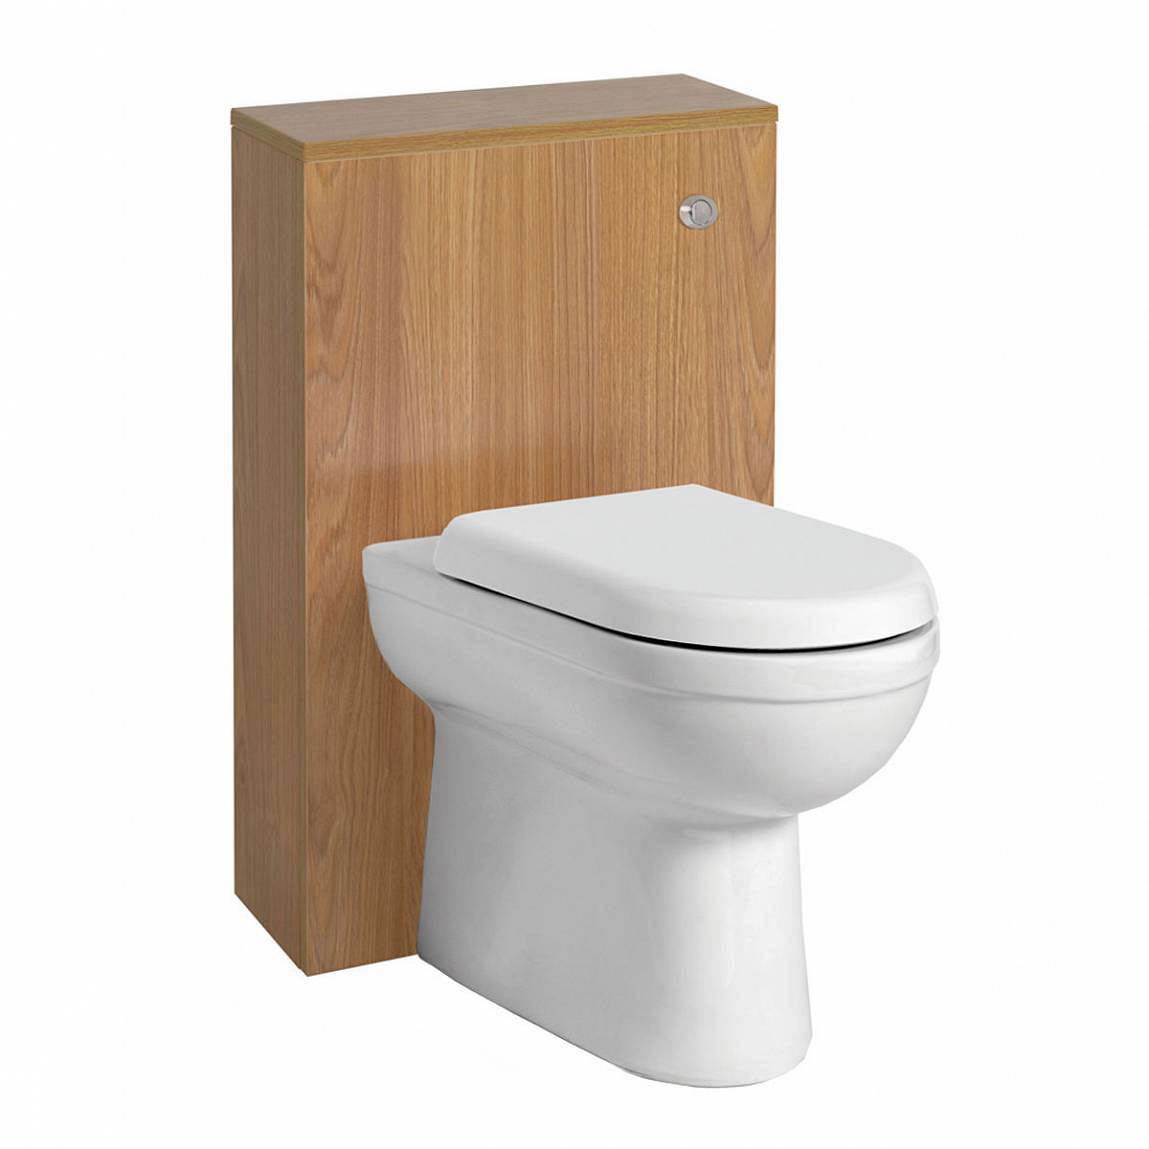 Image of Autograph Back To Wall Toilet inc Seat & Slimline Oak Unit